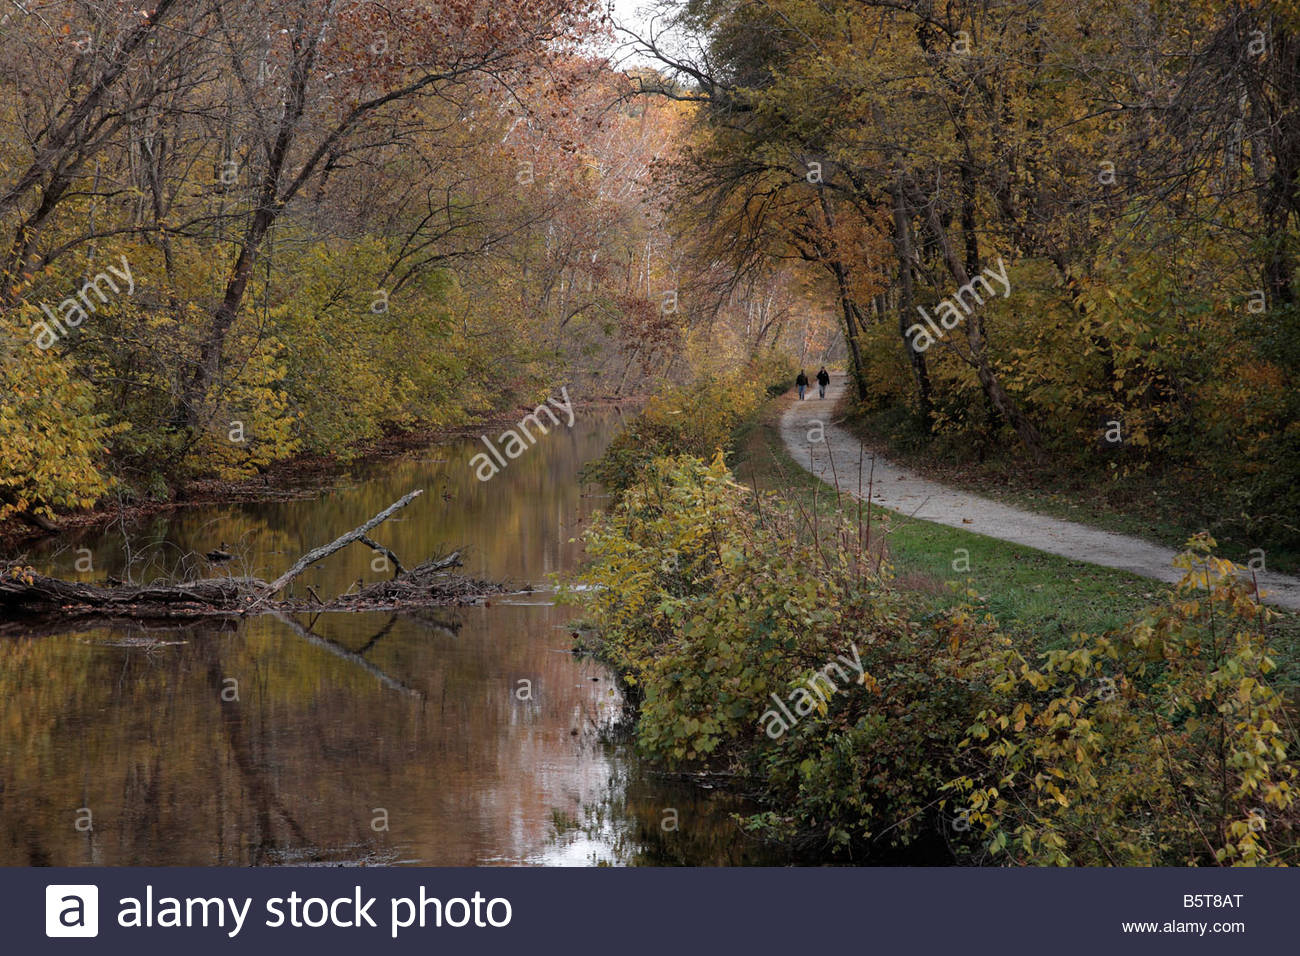 Hikers on the C&O Canal towpath near Violettes Lock in Maryland - Stock Image